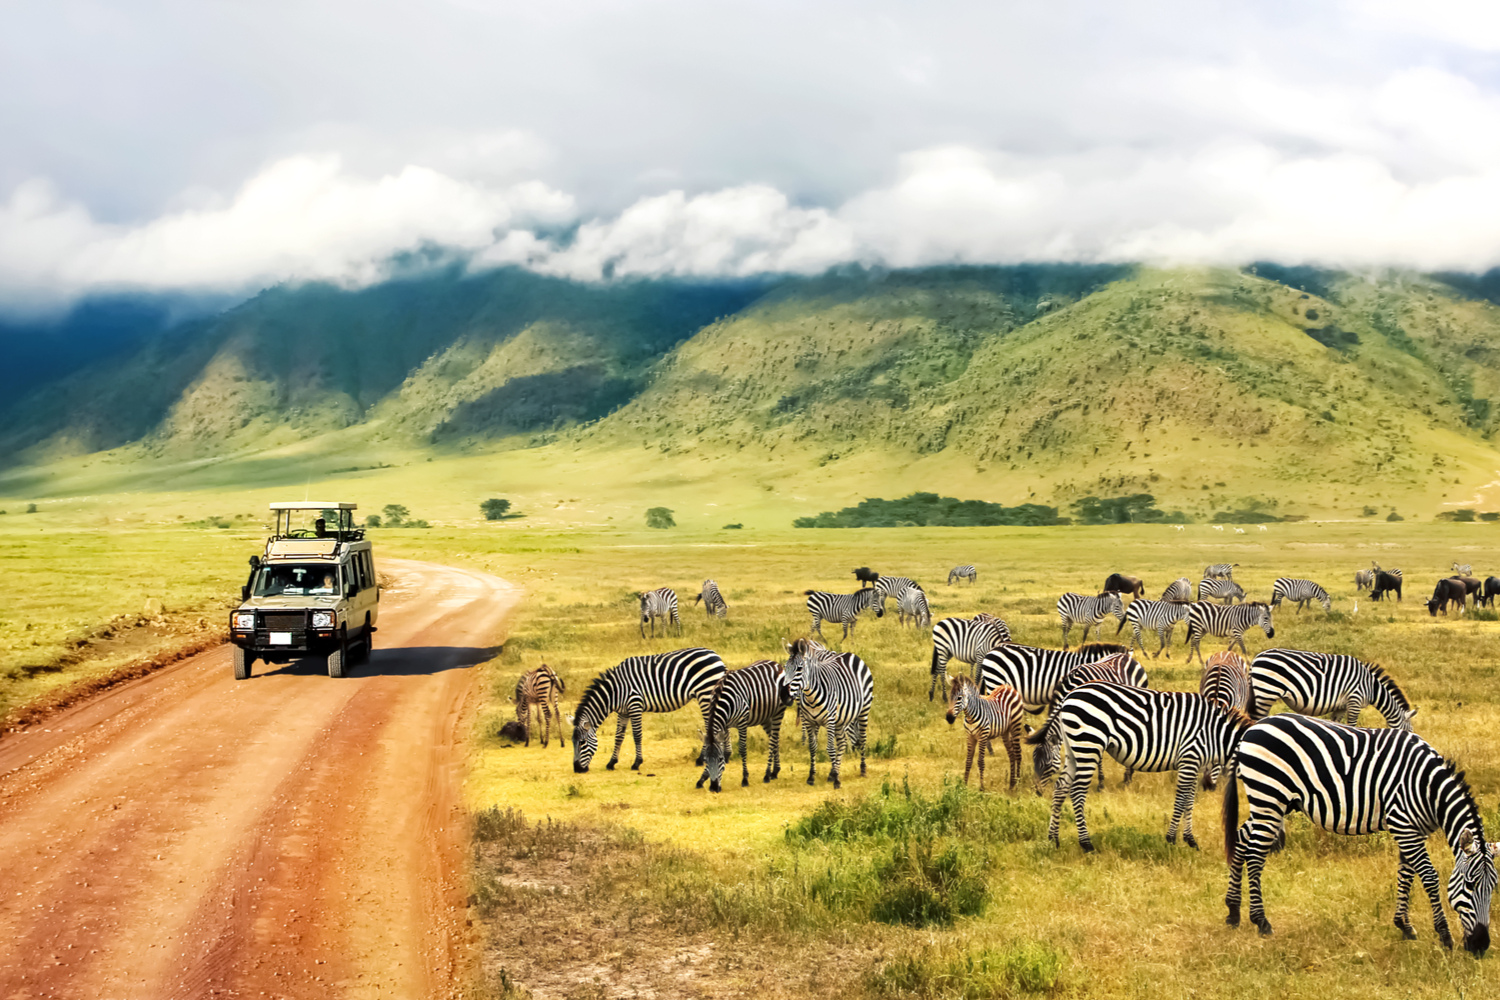 Zebras against mountains and clouds